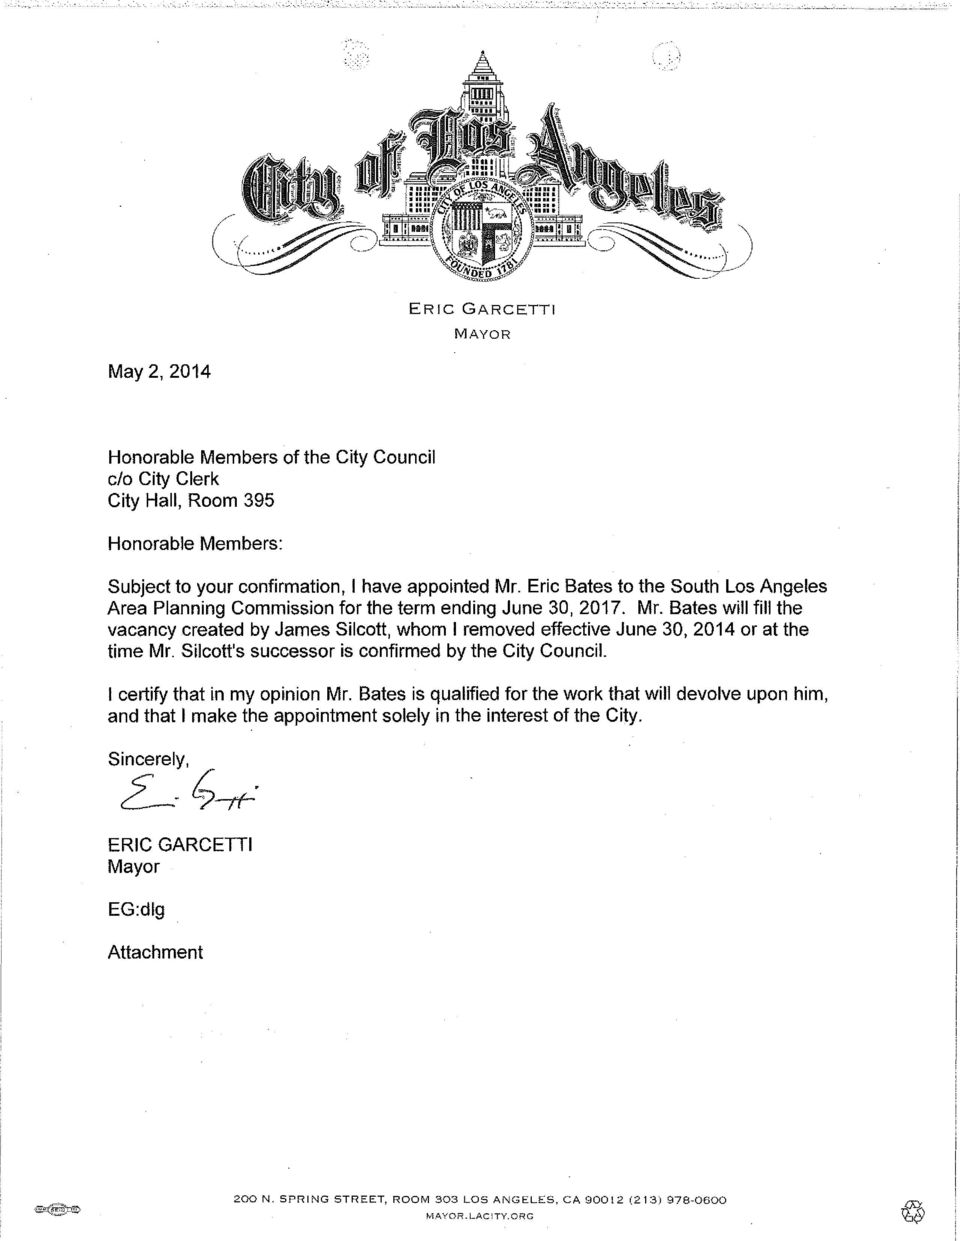 Bates will fill the vacancy created by James Silcott, whom I removed effective June 30, 2014 or at the time Mr. Silcott's successor is confirmed by the City Council.